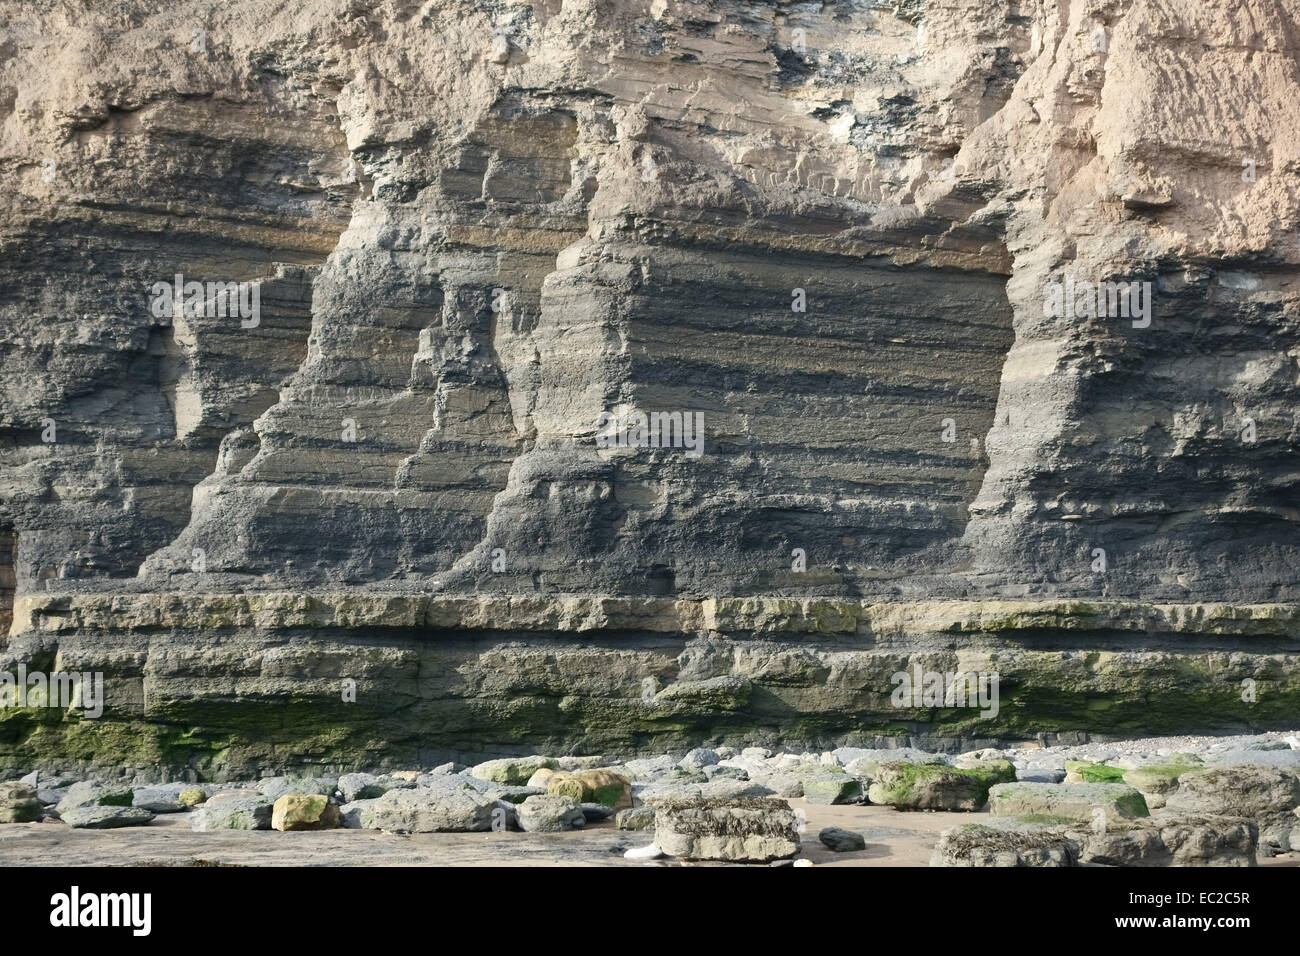 Fossil Bearing Sedimentary Rock Strata Forming The Cliffs